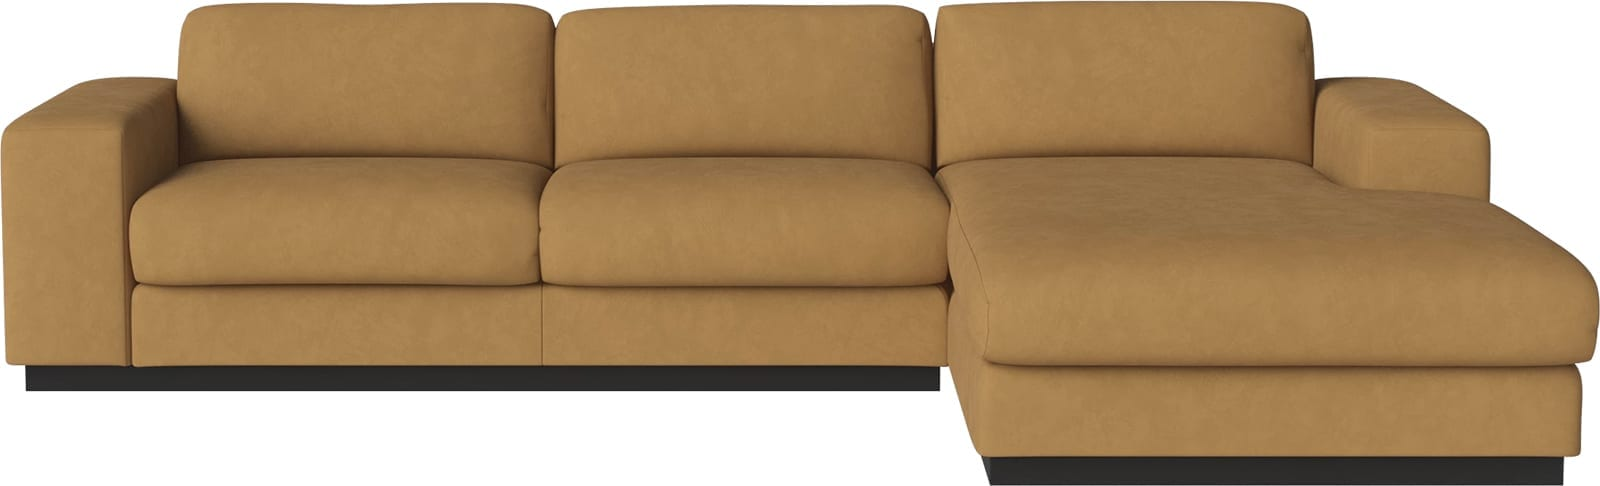 Sepia 3 seater sofa with chaise longue